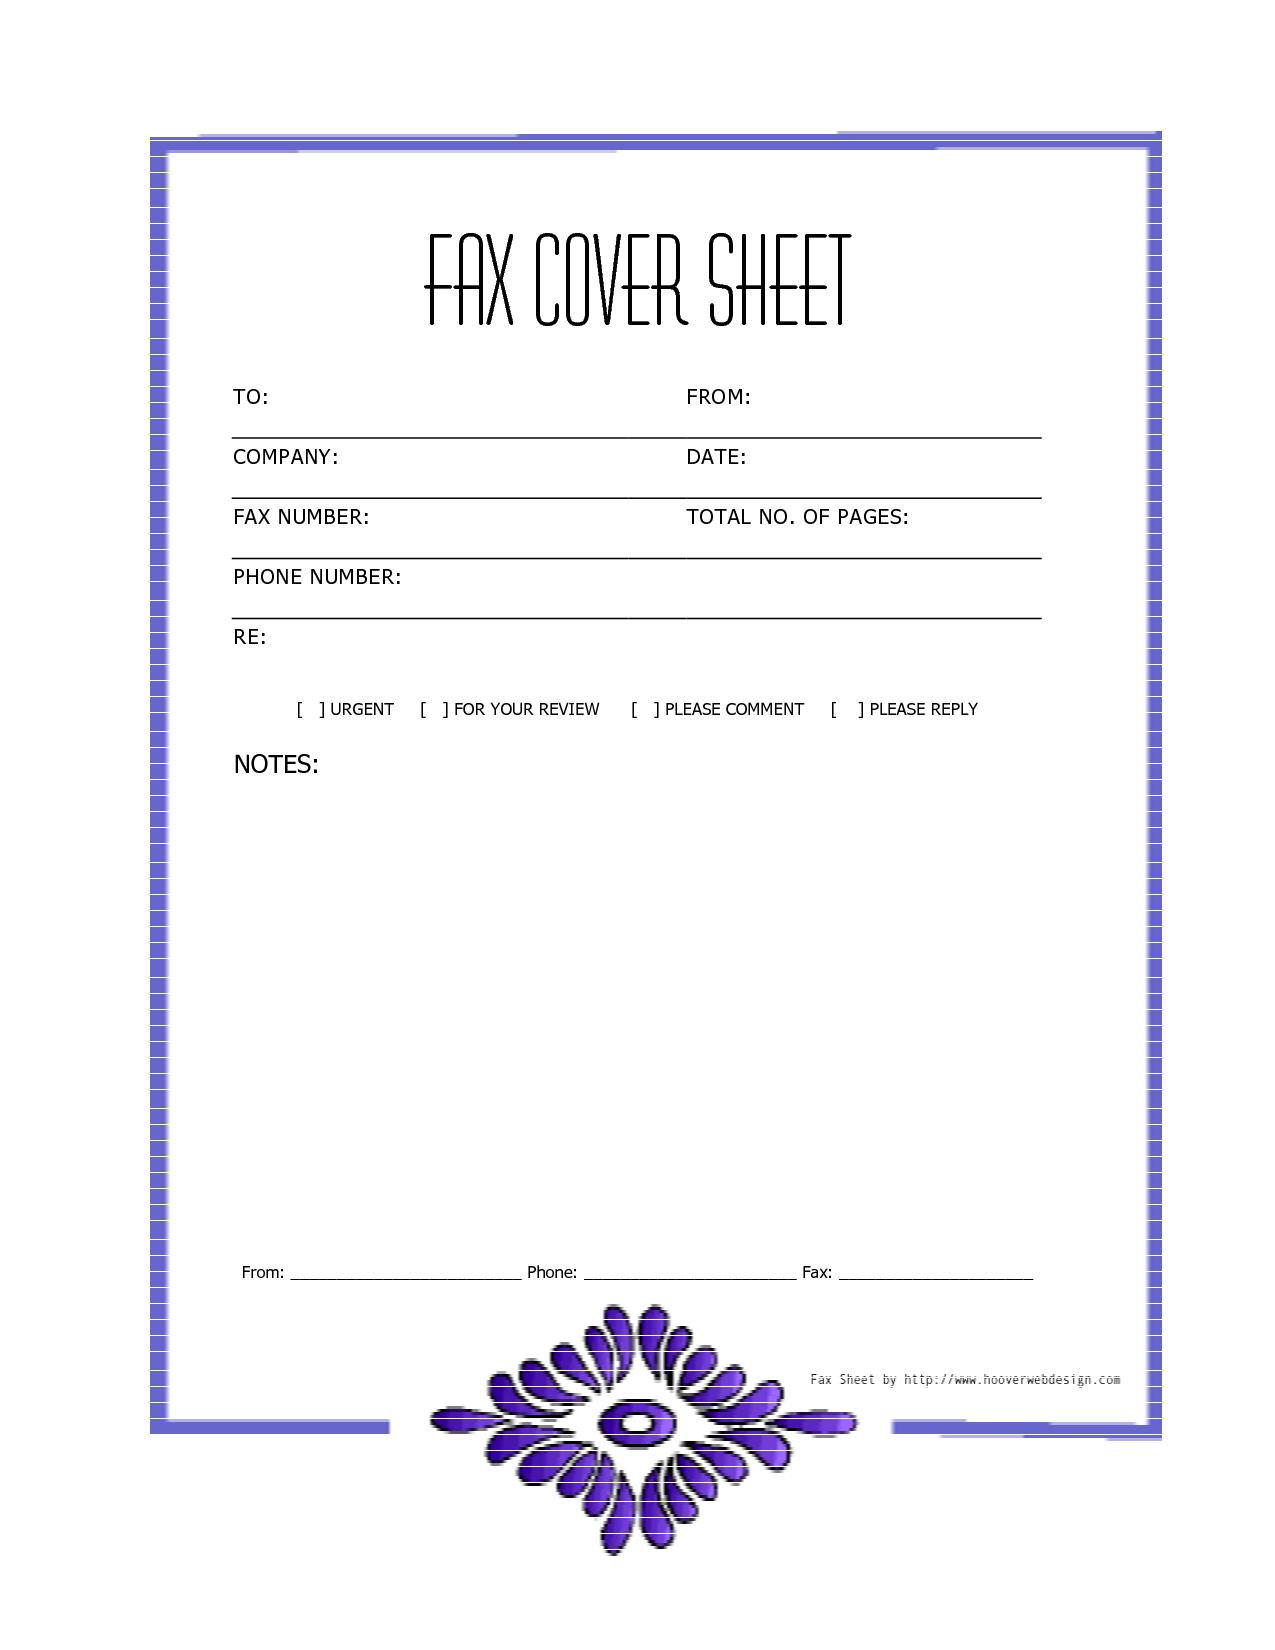 Free Printable Fax Cover Sheet Word